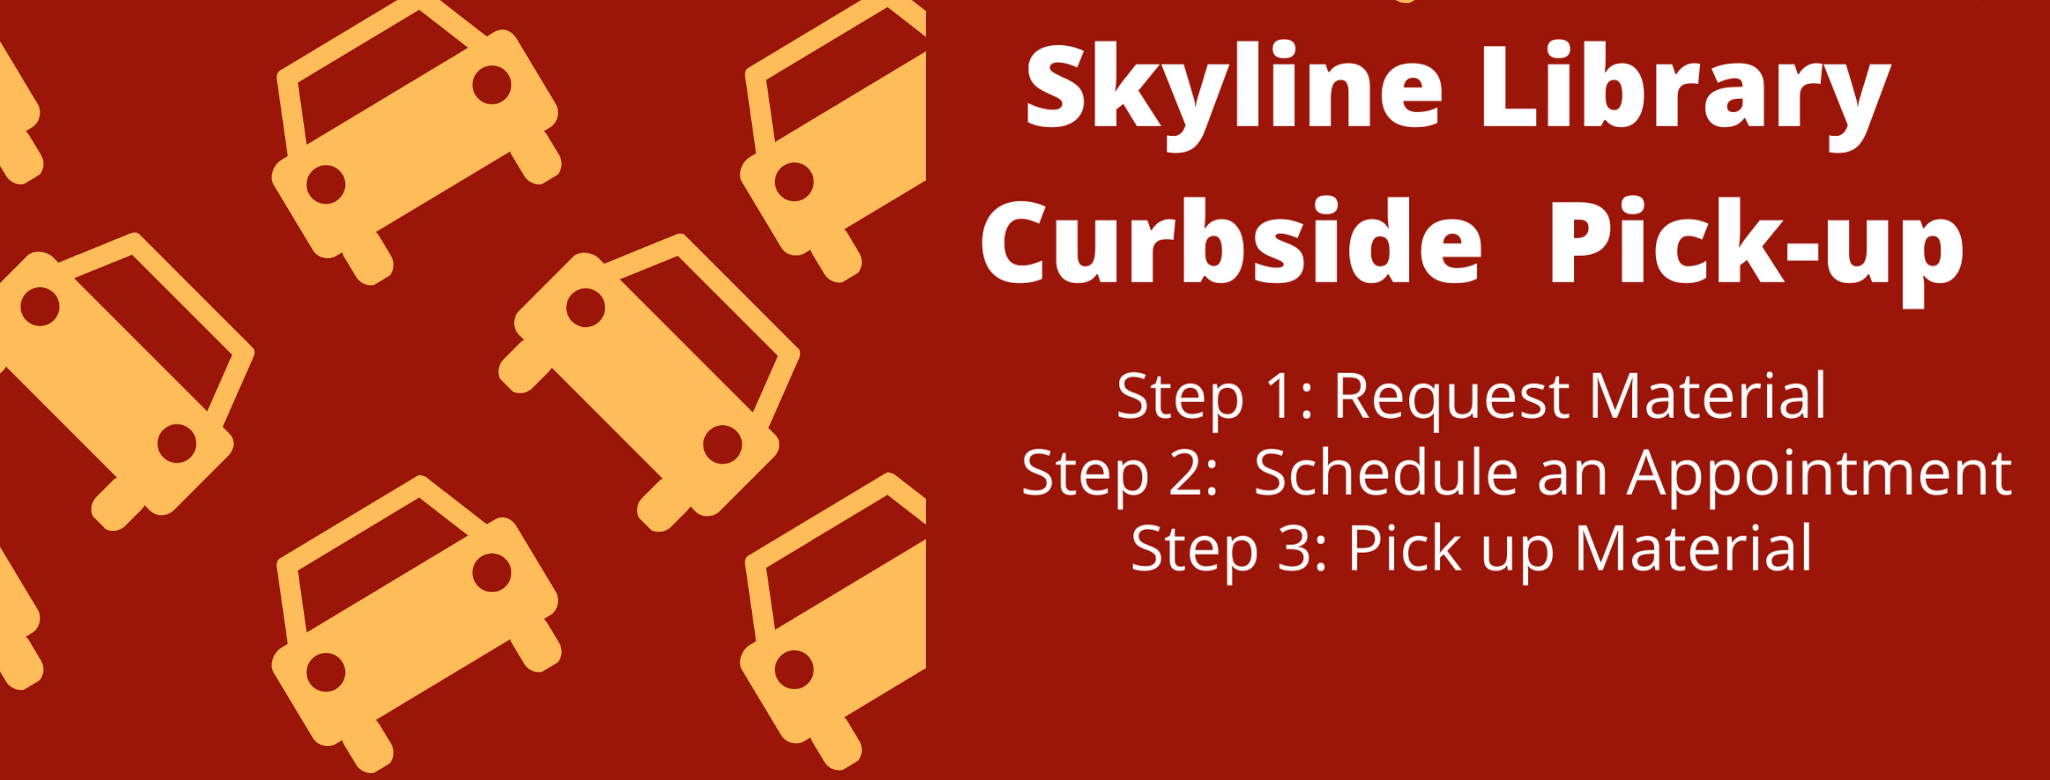 Skyline Library Curbside Pick-up: Request material, schedule appointment, pick up material